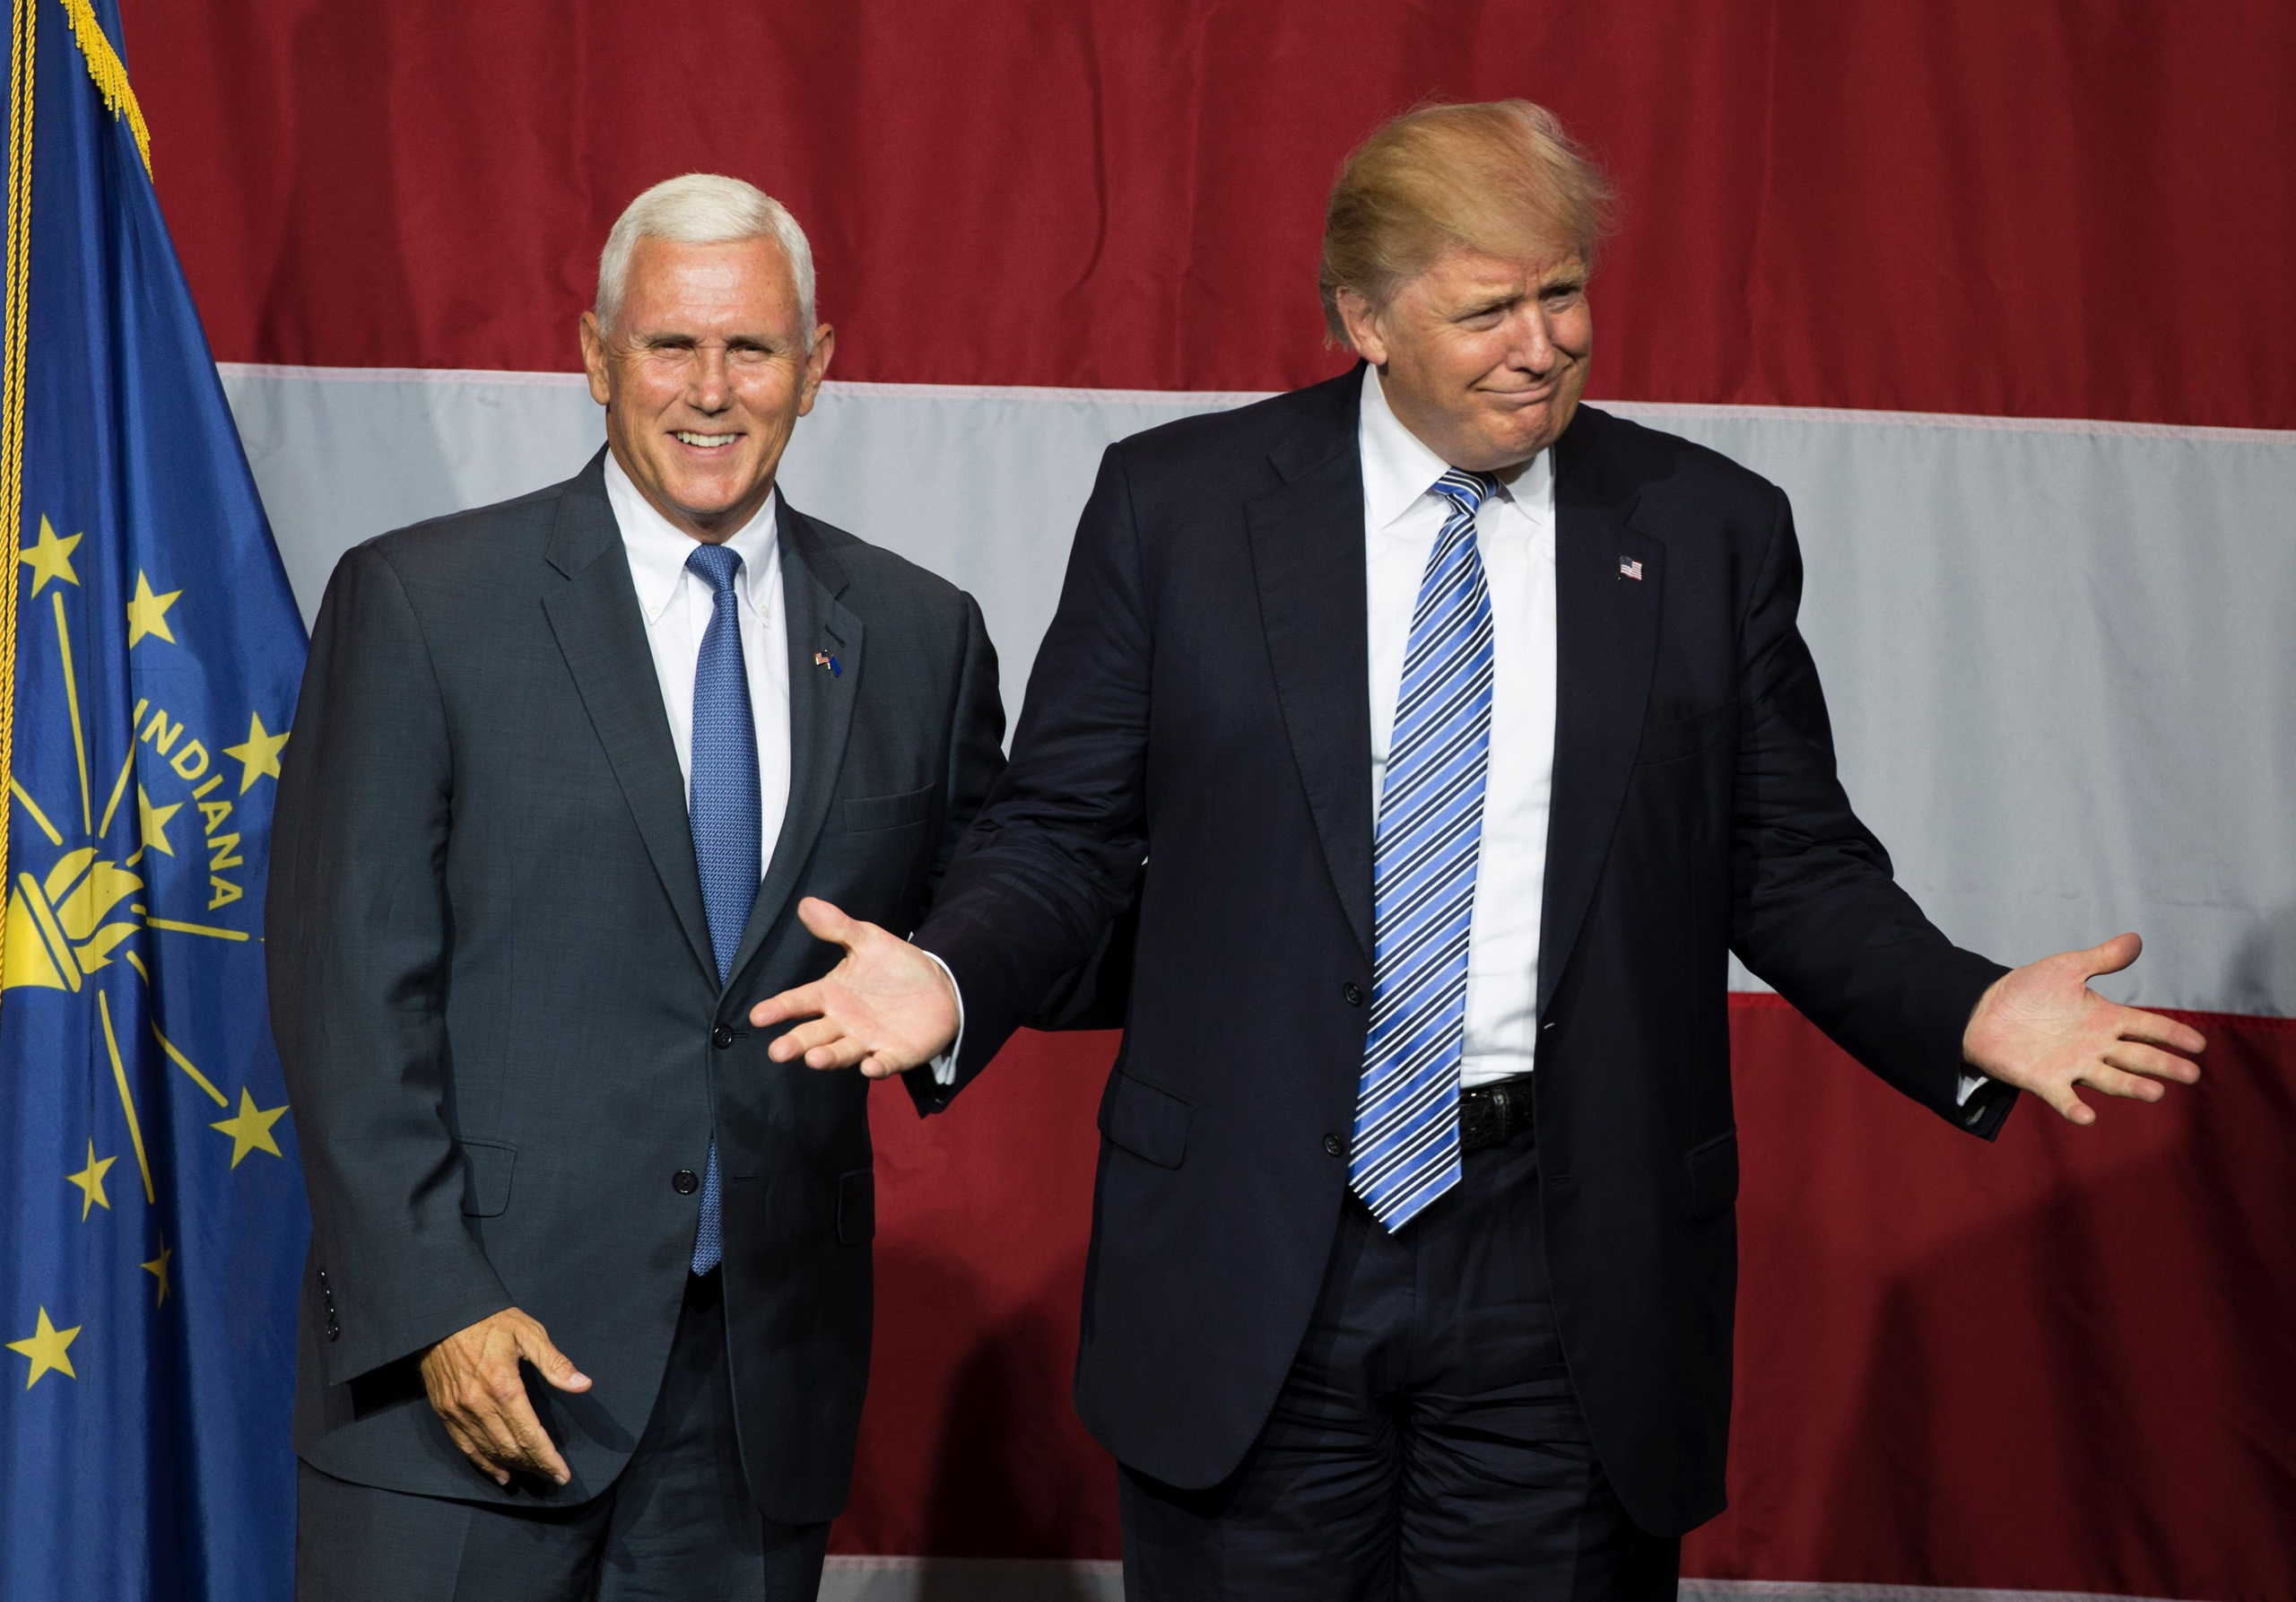 Republican presidential candidate Donald Trump and Indiana Governor Mike Pence taking the stage during a campaign rally at Grant Park Event Center in Westfield, Ind. on July 12, 2016.